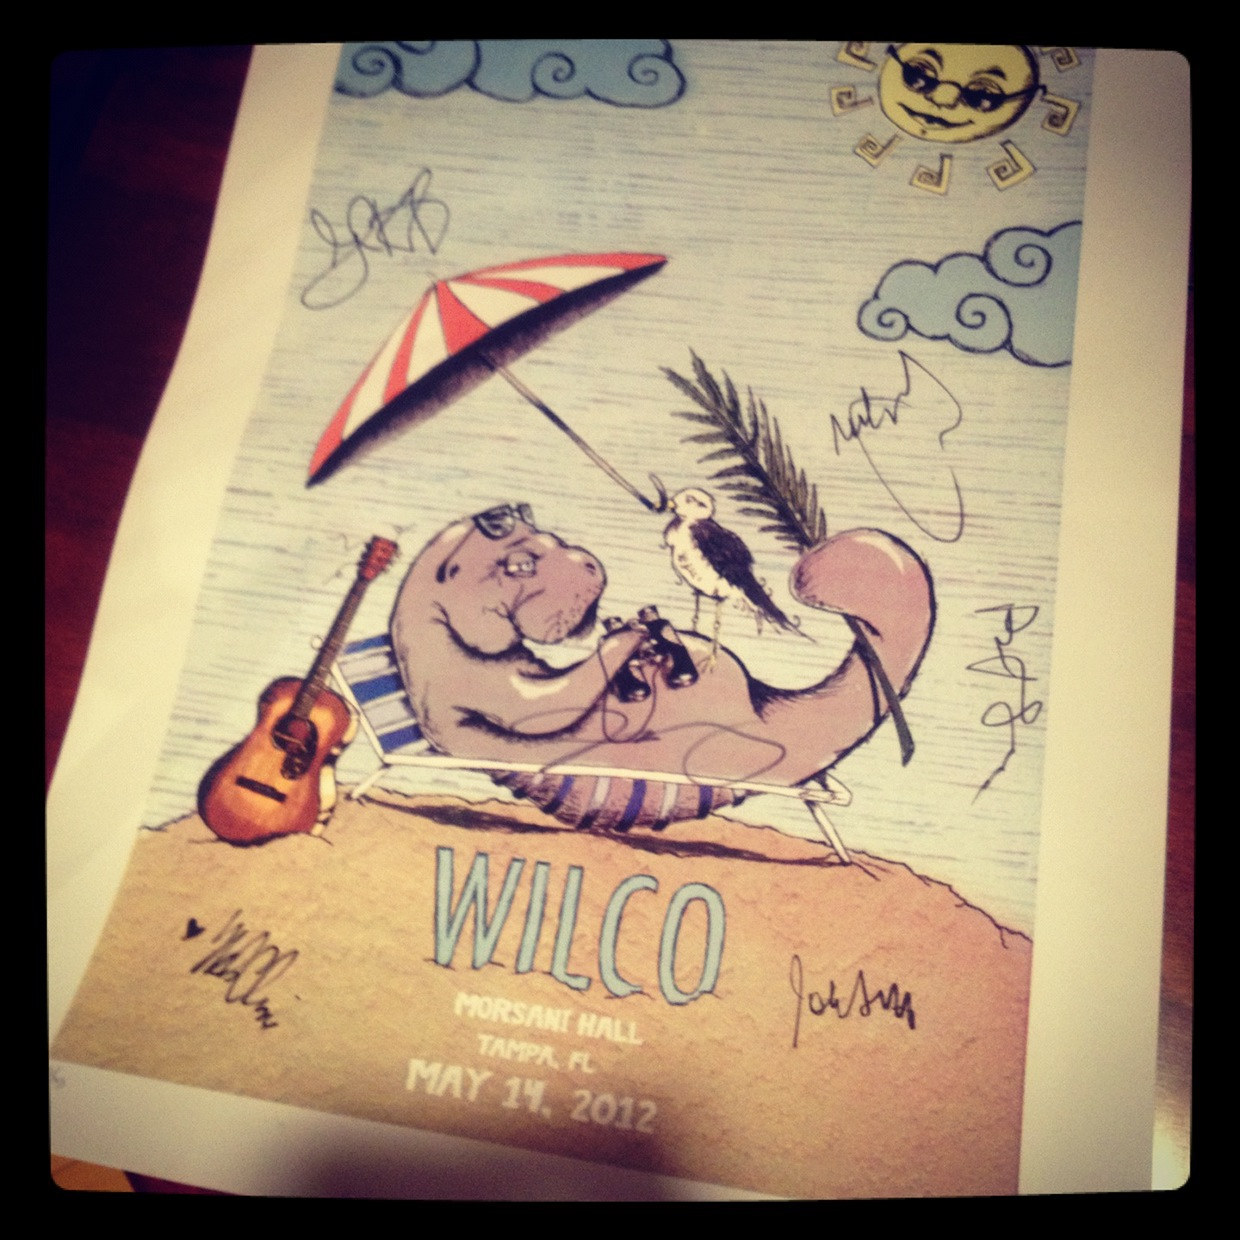 Band autographed copy of the printed poster.